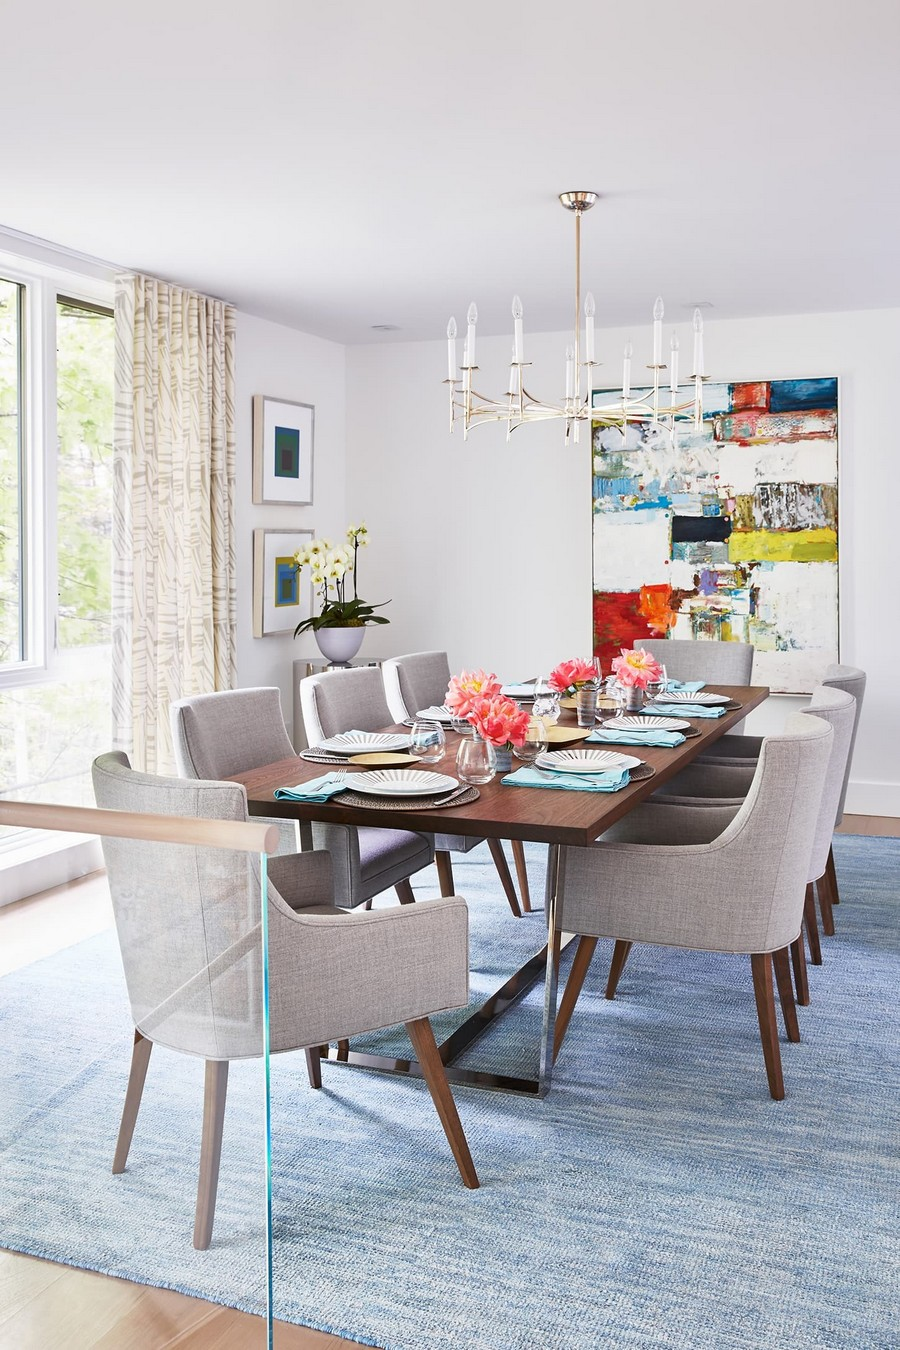 7 High-End Dining Room Design Ideas Perfect For Your Home Decor high-end dining room design 7 High-End Dining Room Design Ideas Perfect For Your Home Decor High End Dining Room Design 6